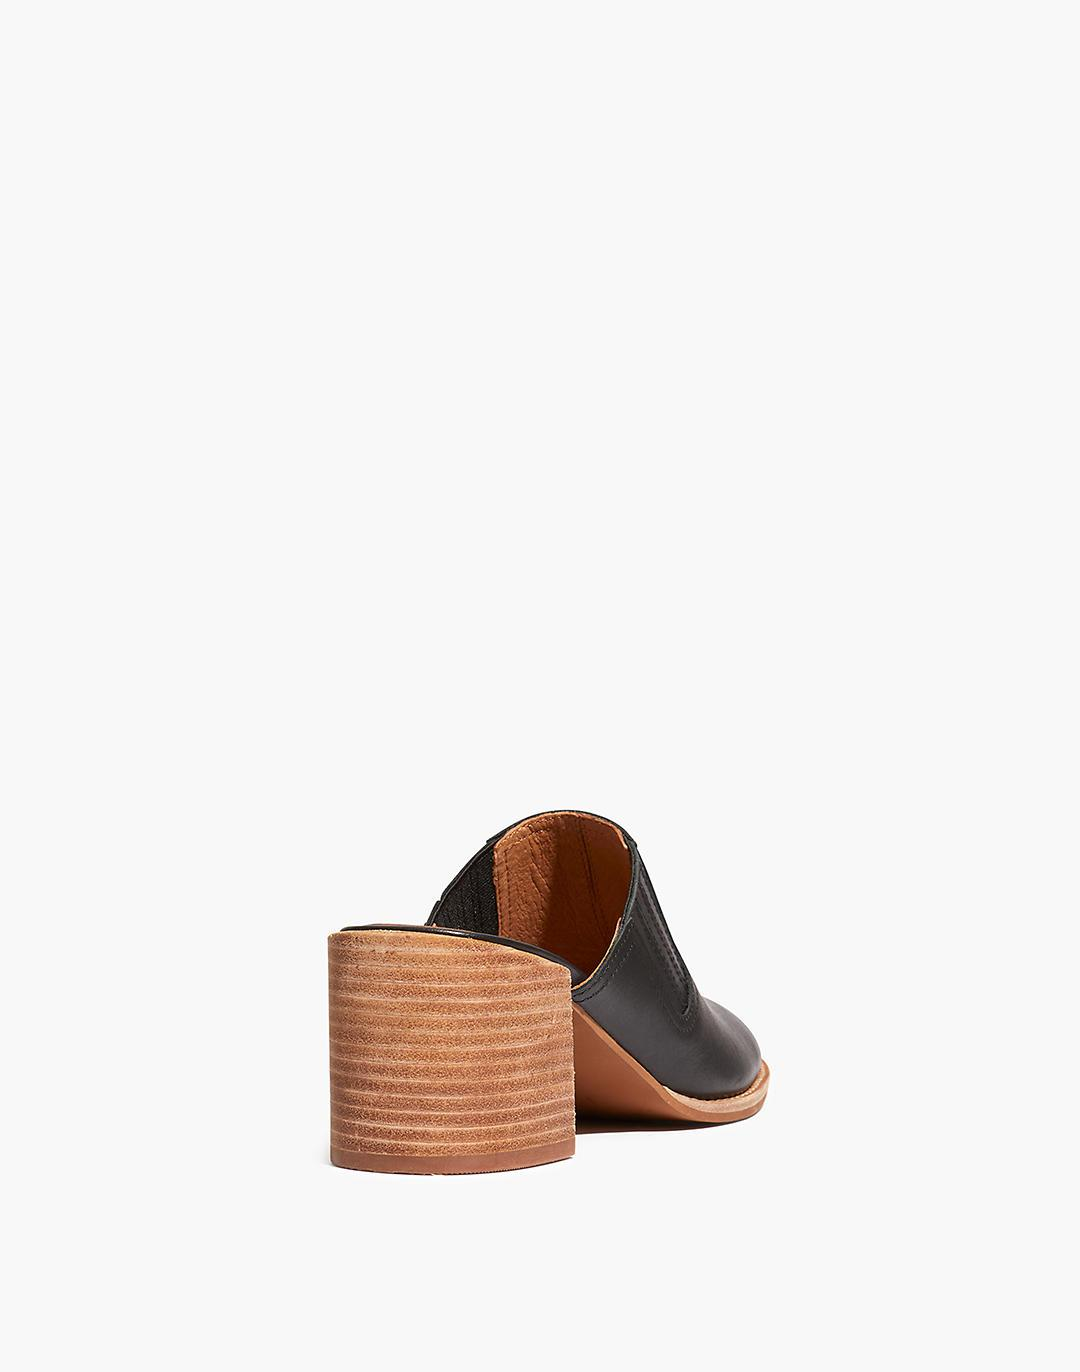 The Carey Mule in Leather 2